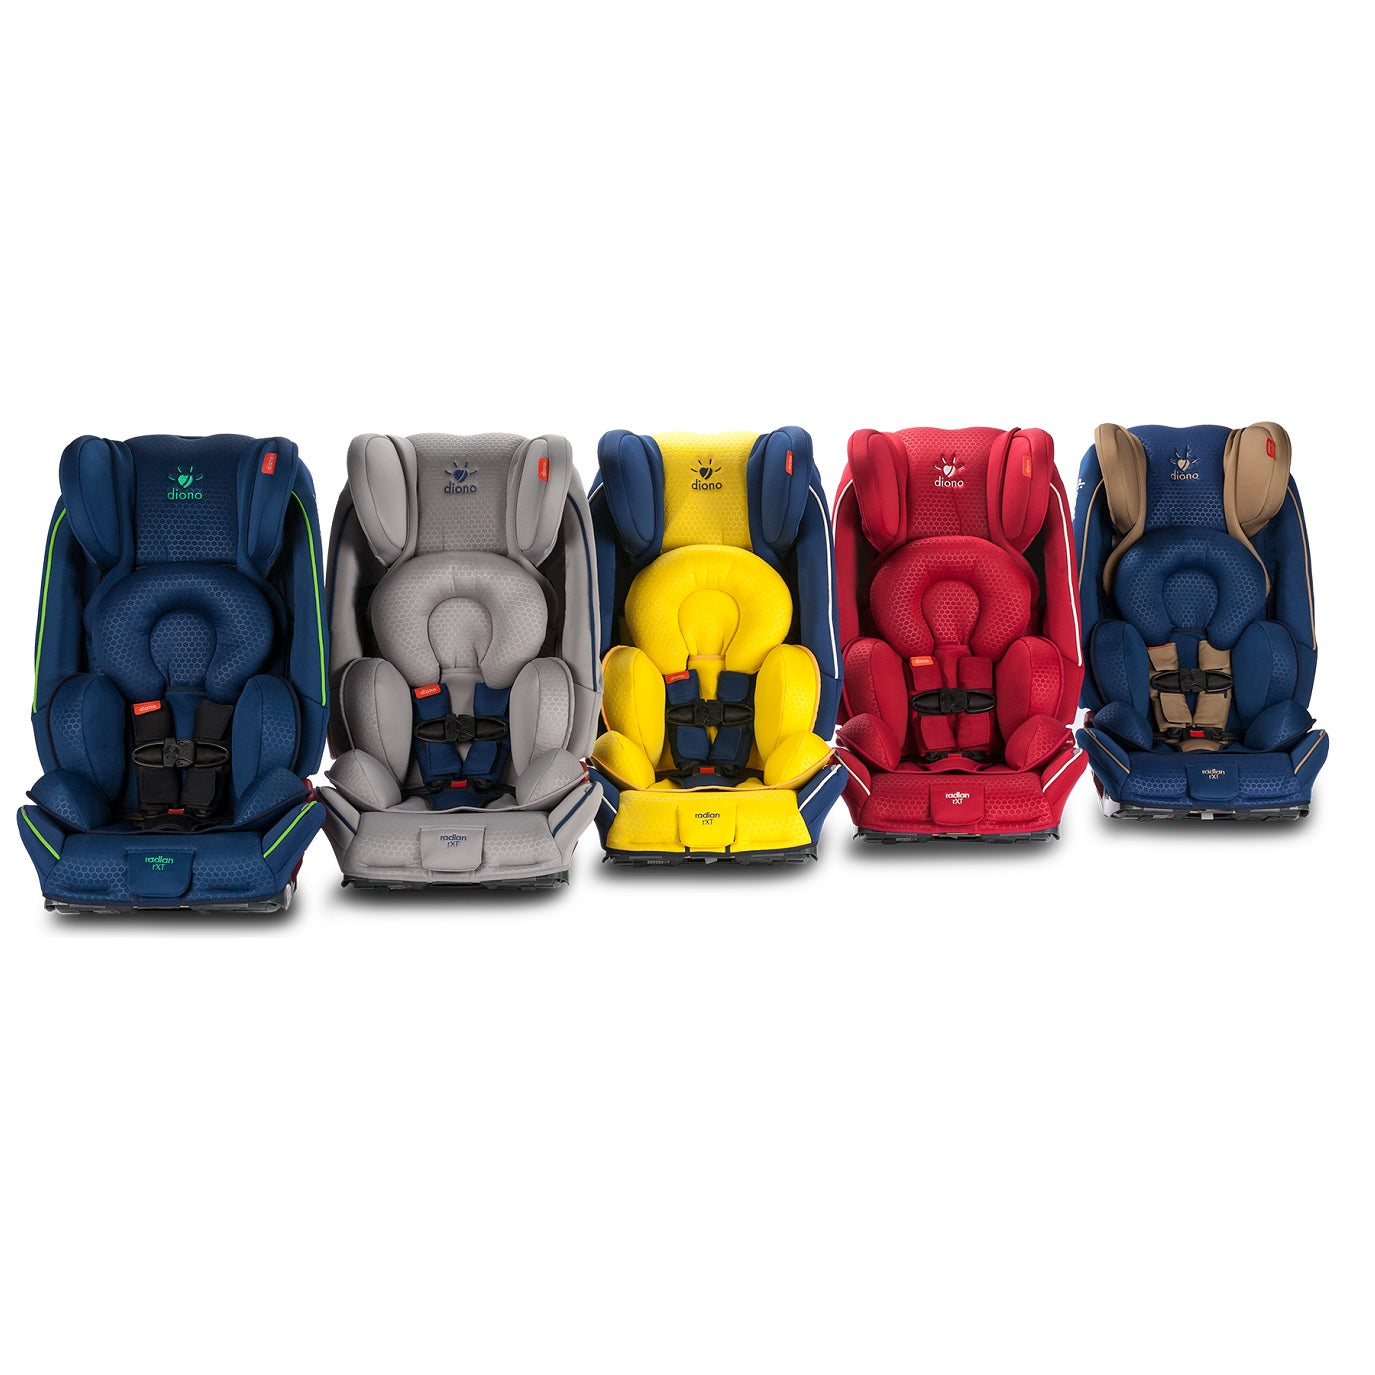 Diono RadianR RXT Just My Color Convertible Booster Car Seat